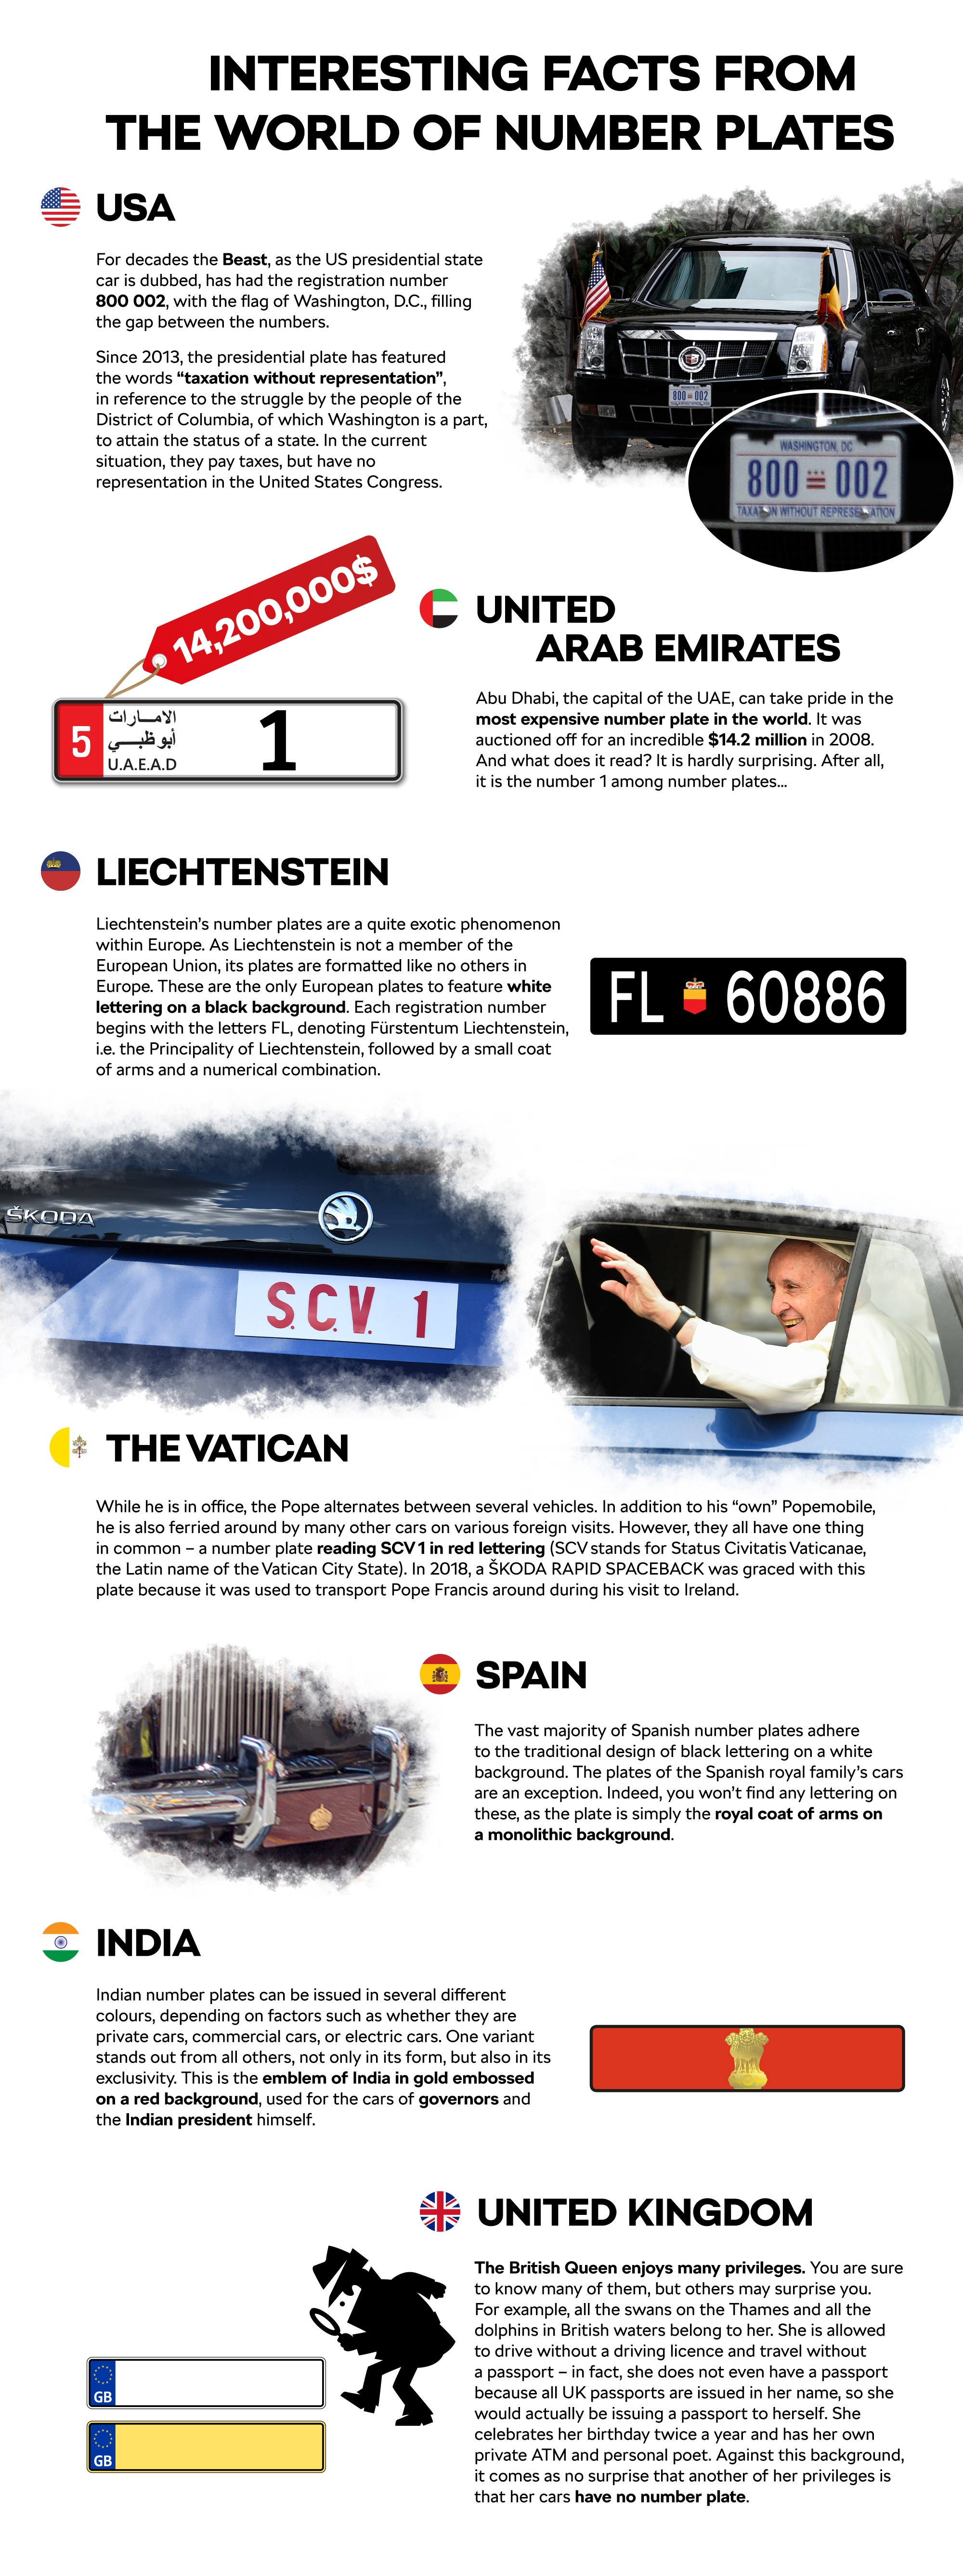 Interesting Facts from the World of Number Plates - Infographic